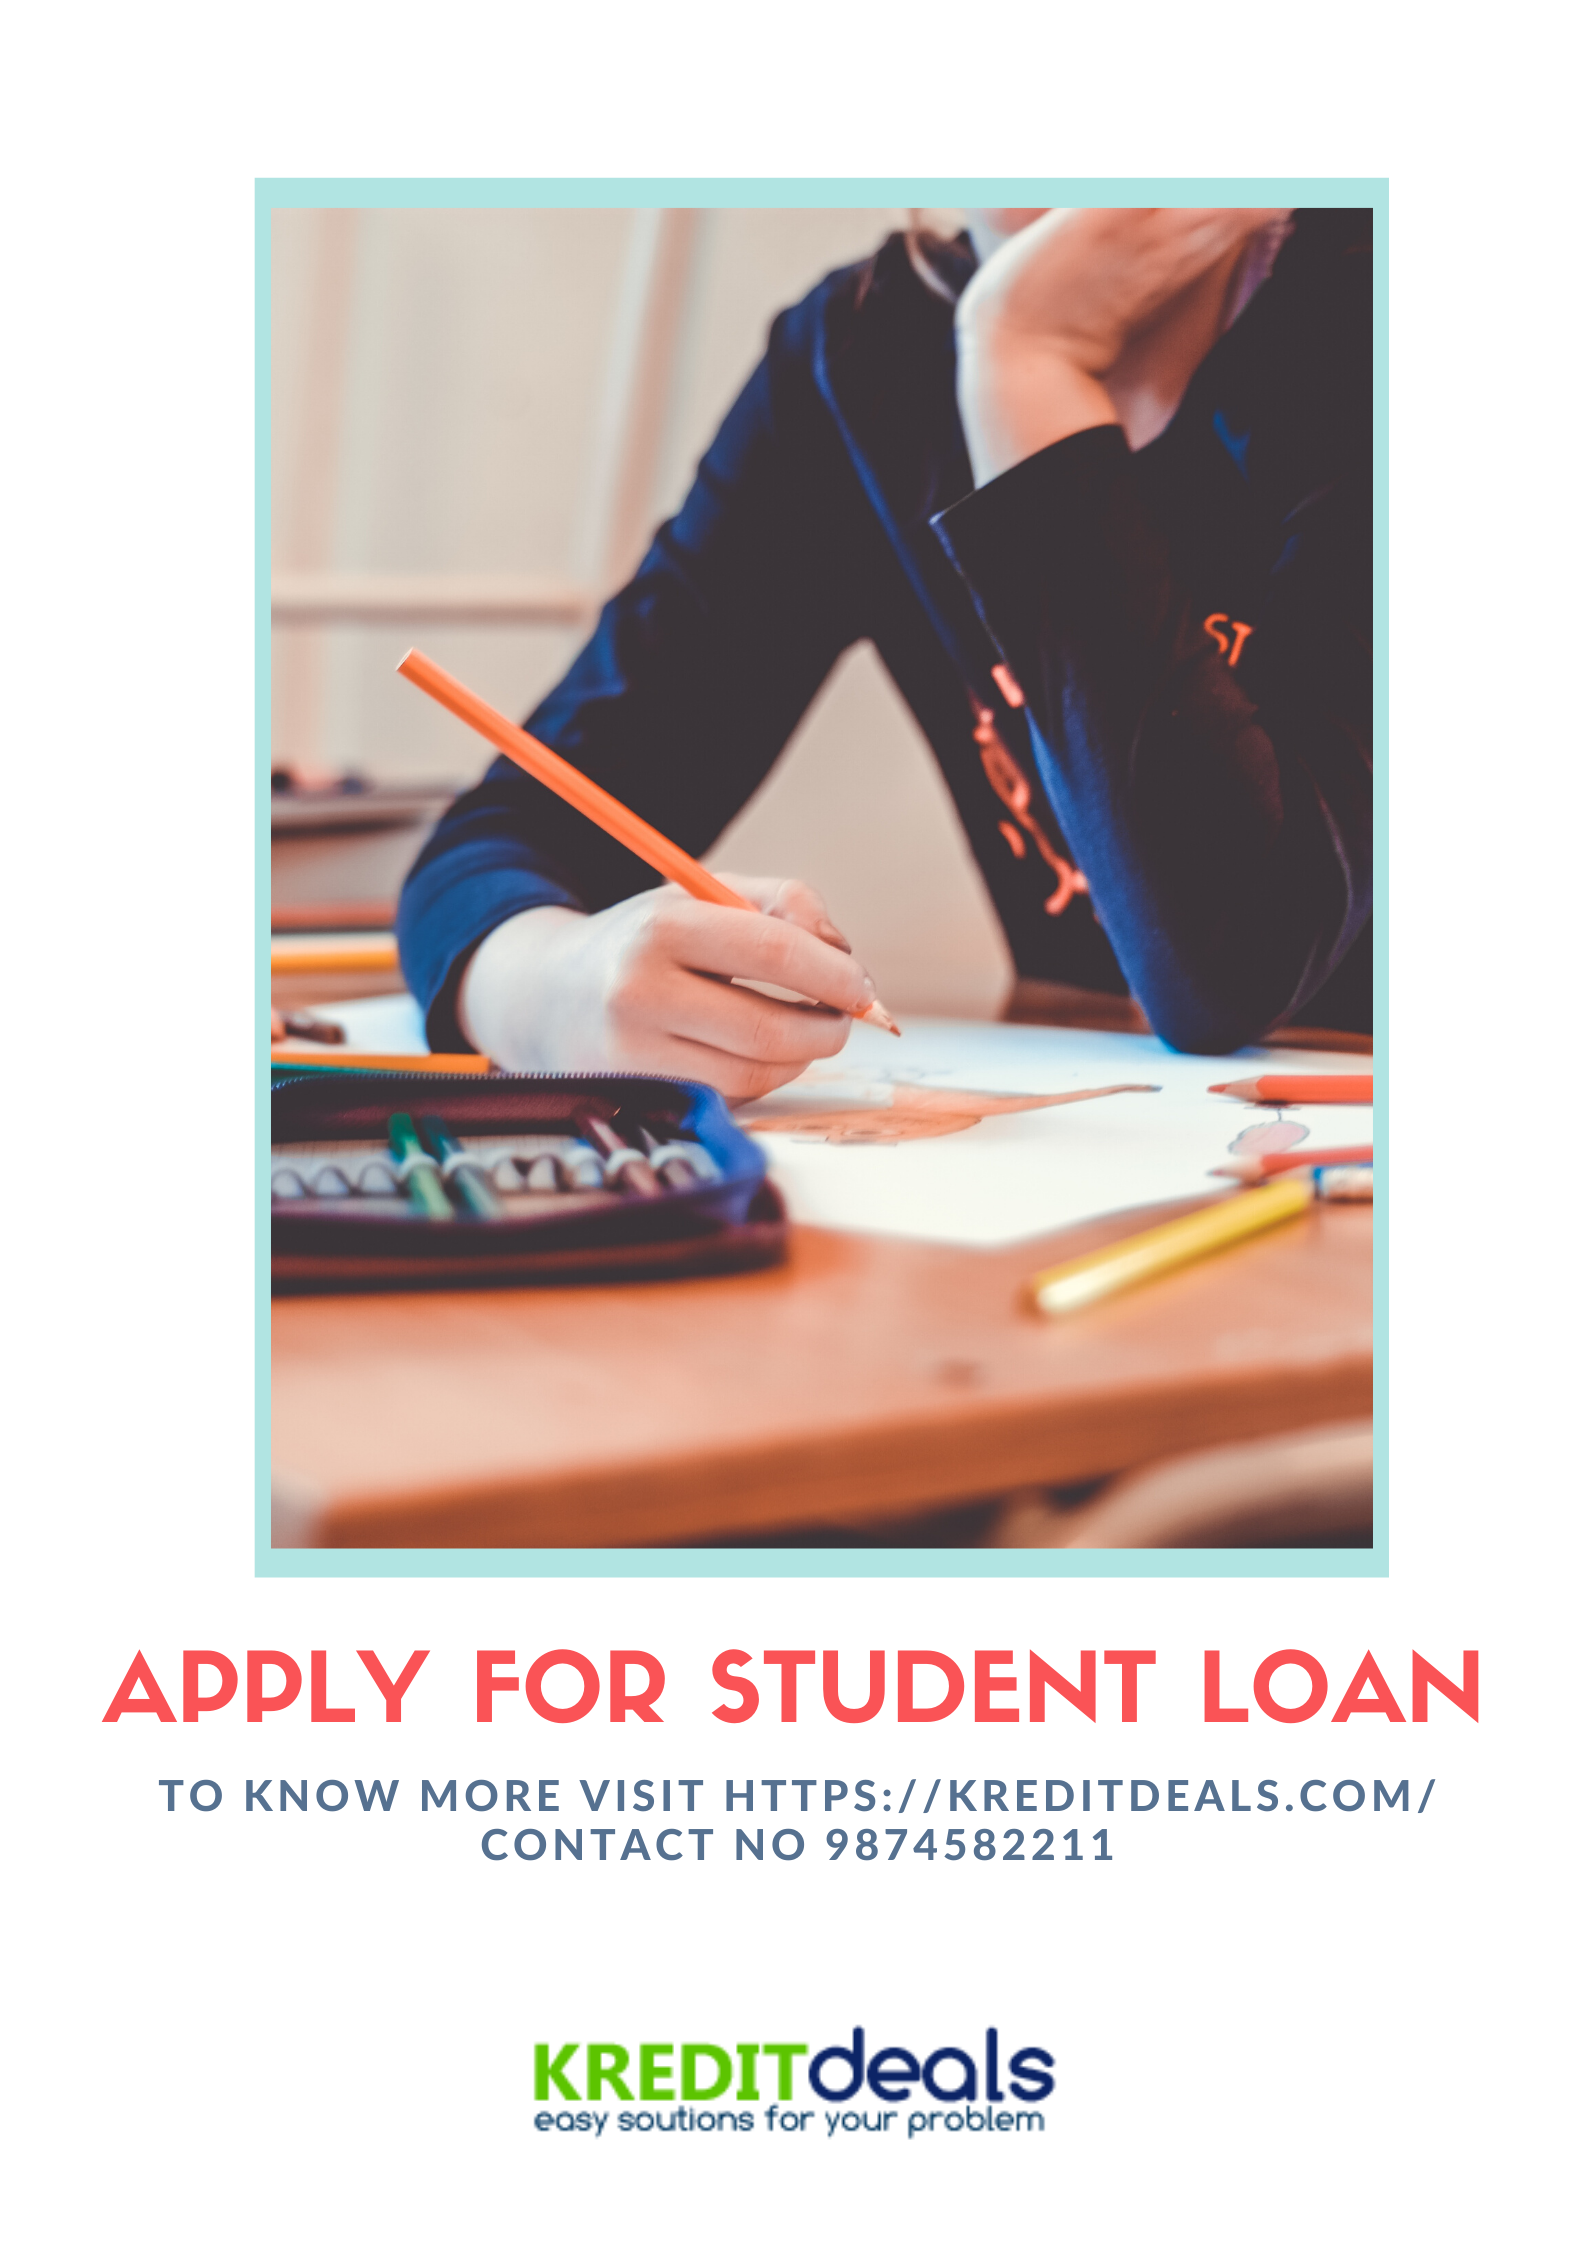 Education Loan In 2020 Apply For Student Loans Education Private Student Loan